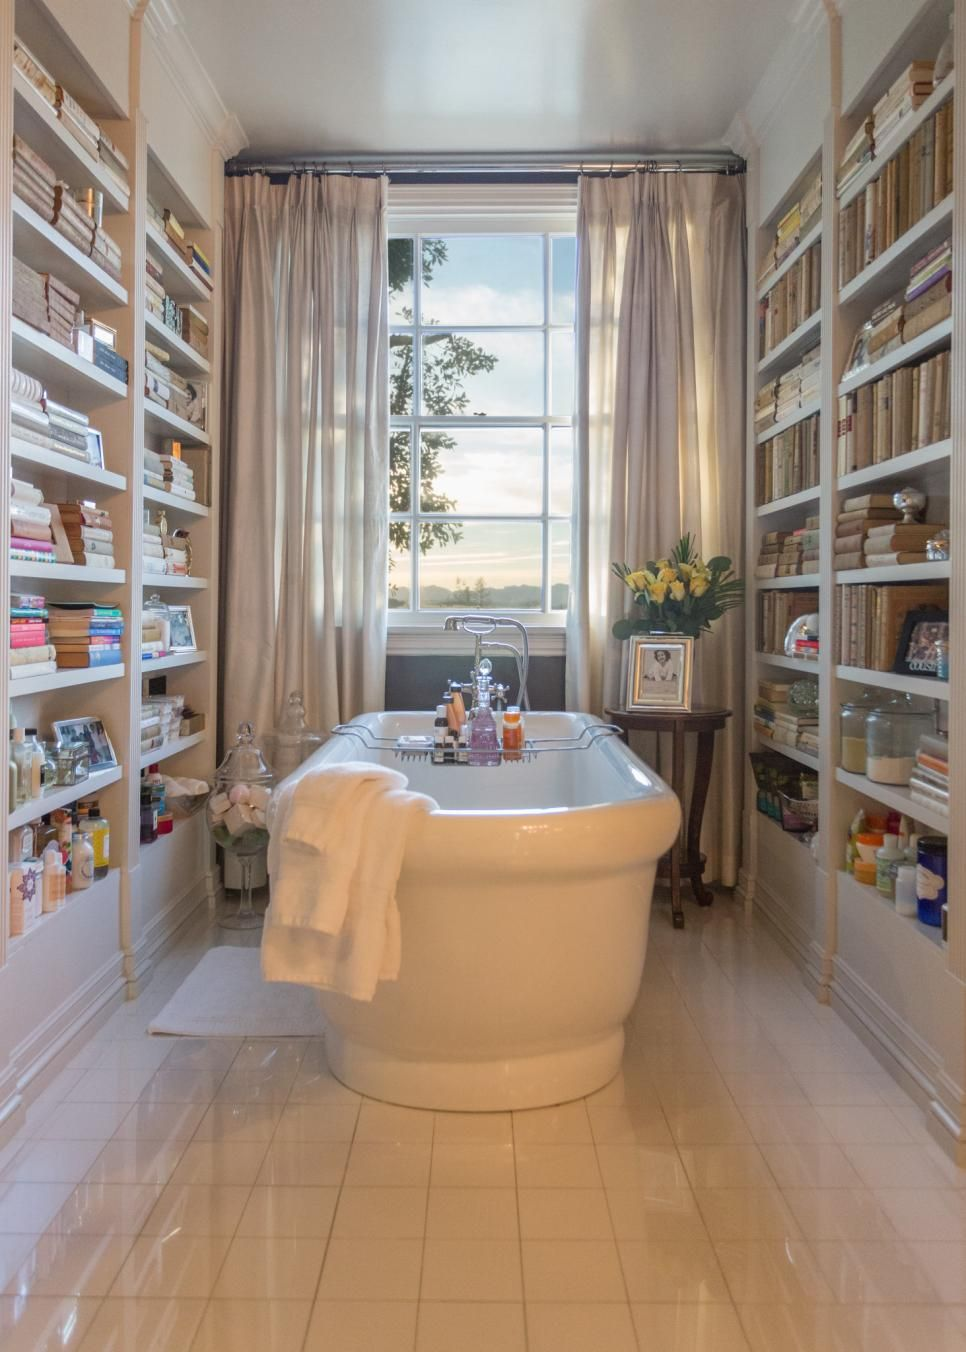 Bathroom Remodeling Books 21 beautiful bookcases and creative book storage ideas | bathtubs